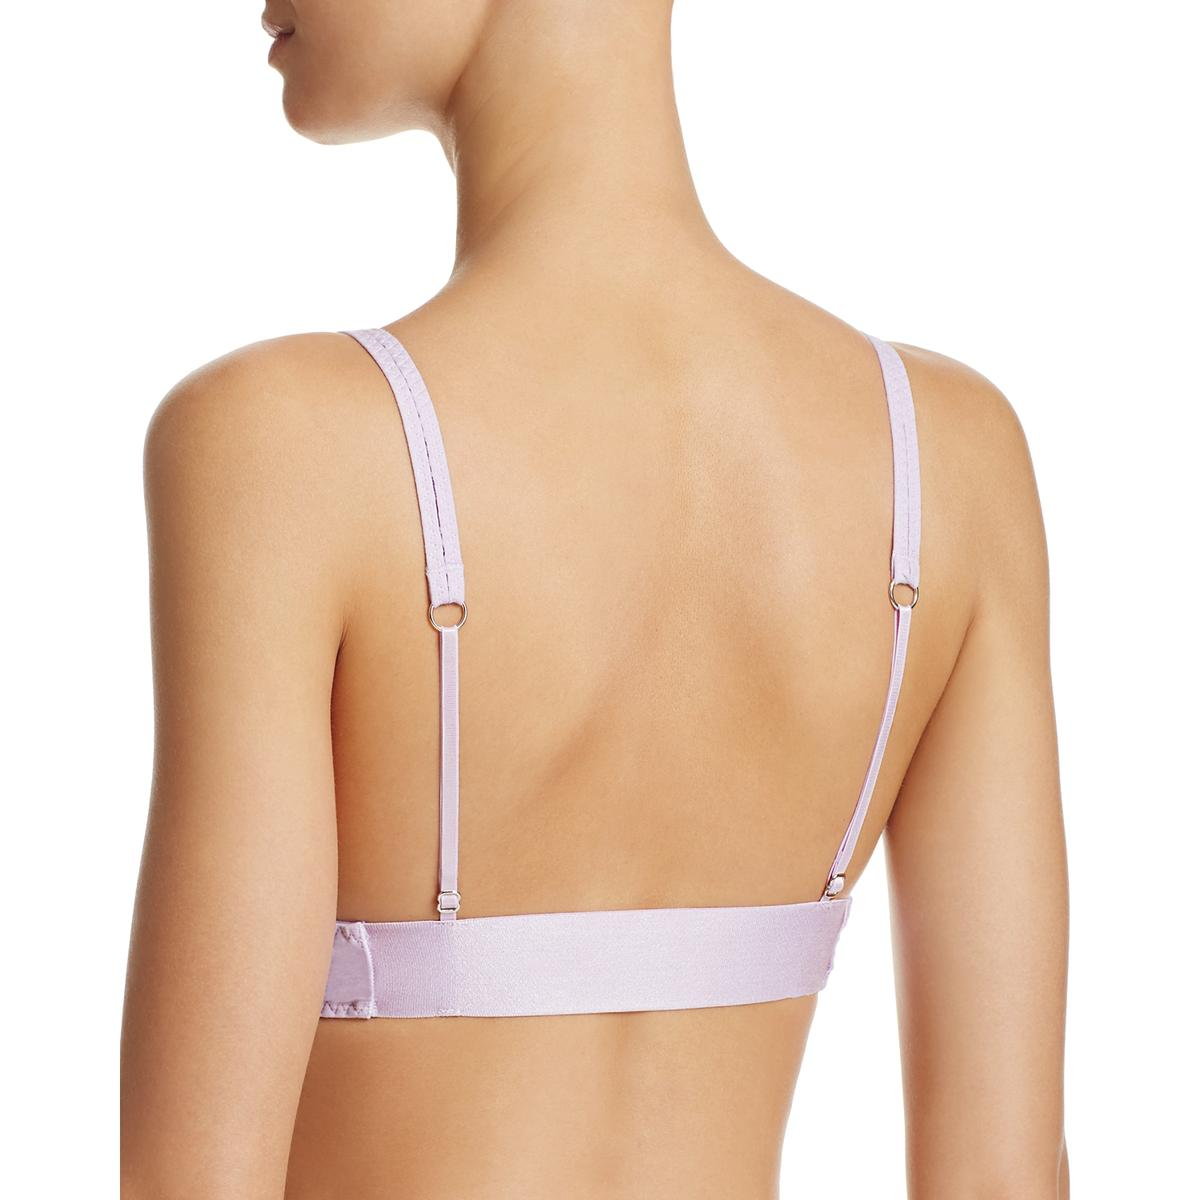 66595d9a75 Buy Intimately People Womens Stop Me Purple Plunge Soft Cup Bra L ...